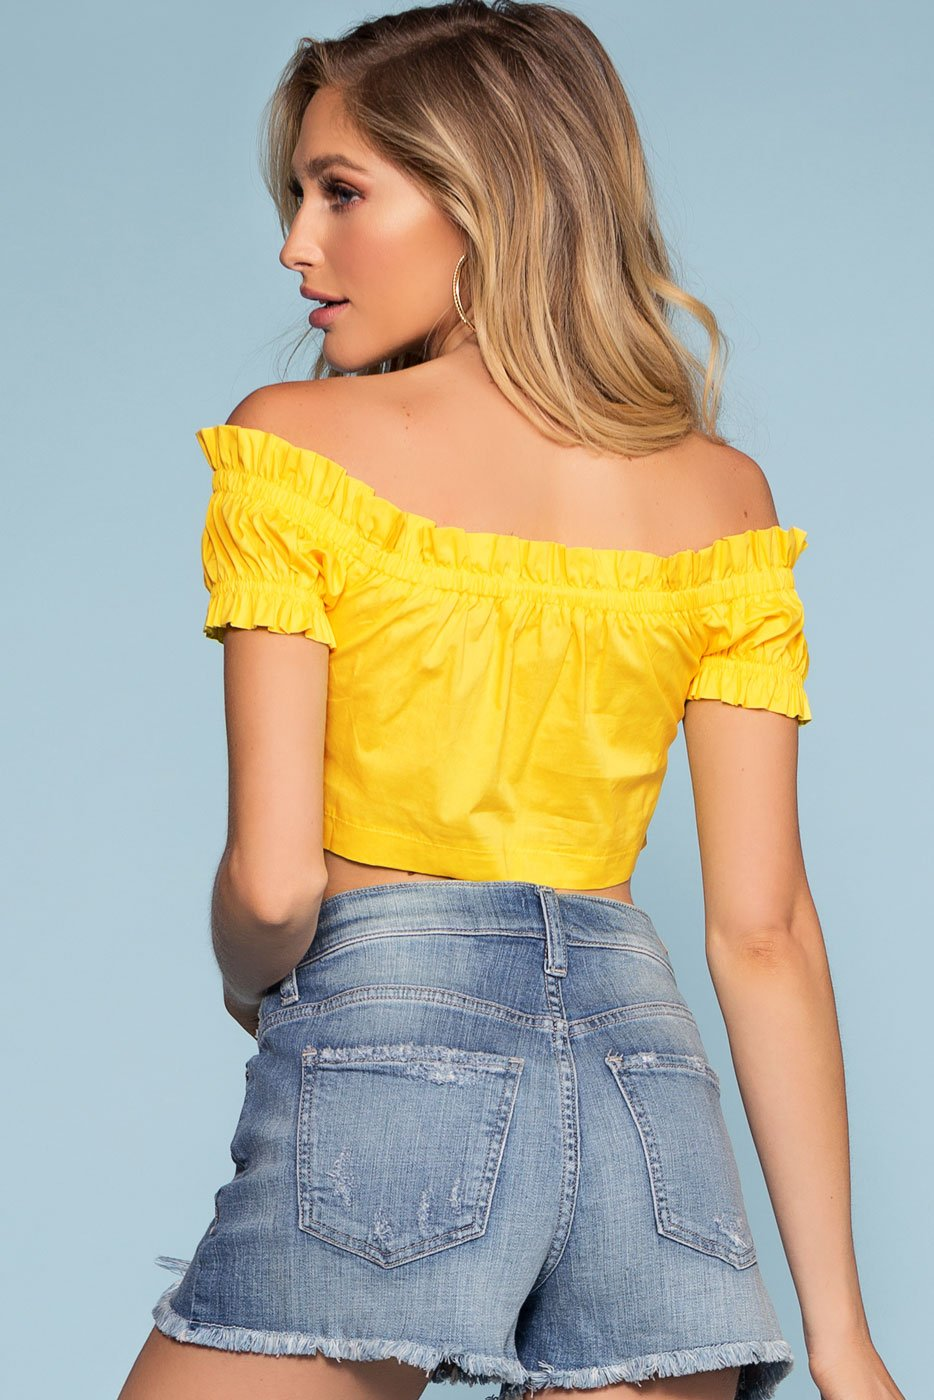 Tops - Briana Off The Shoulder Crop Top - Yellow